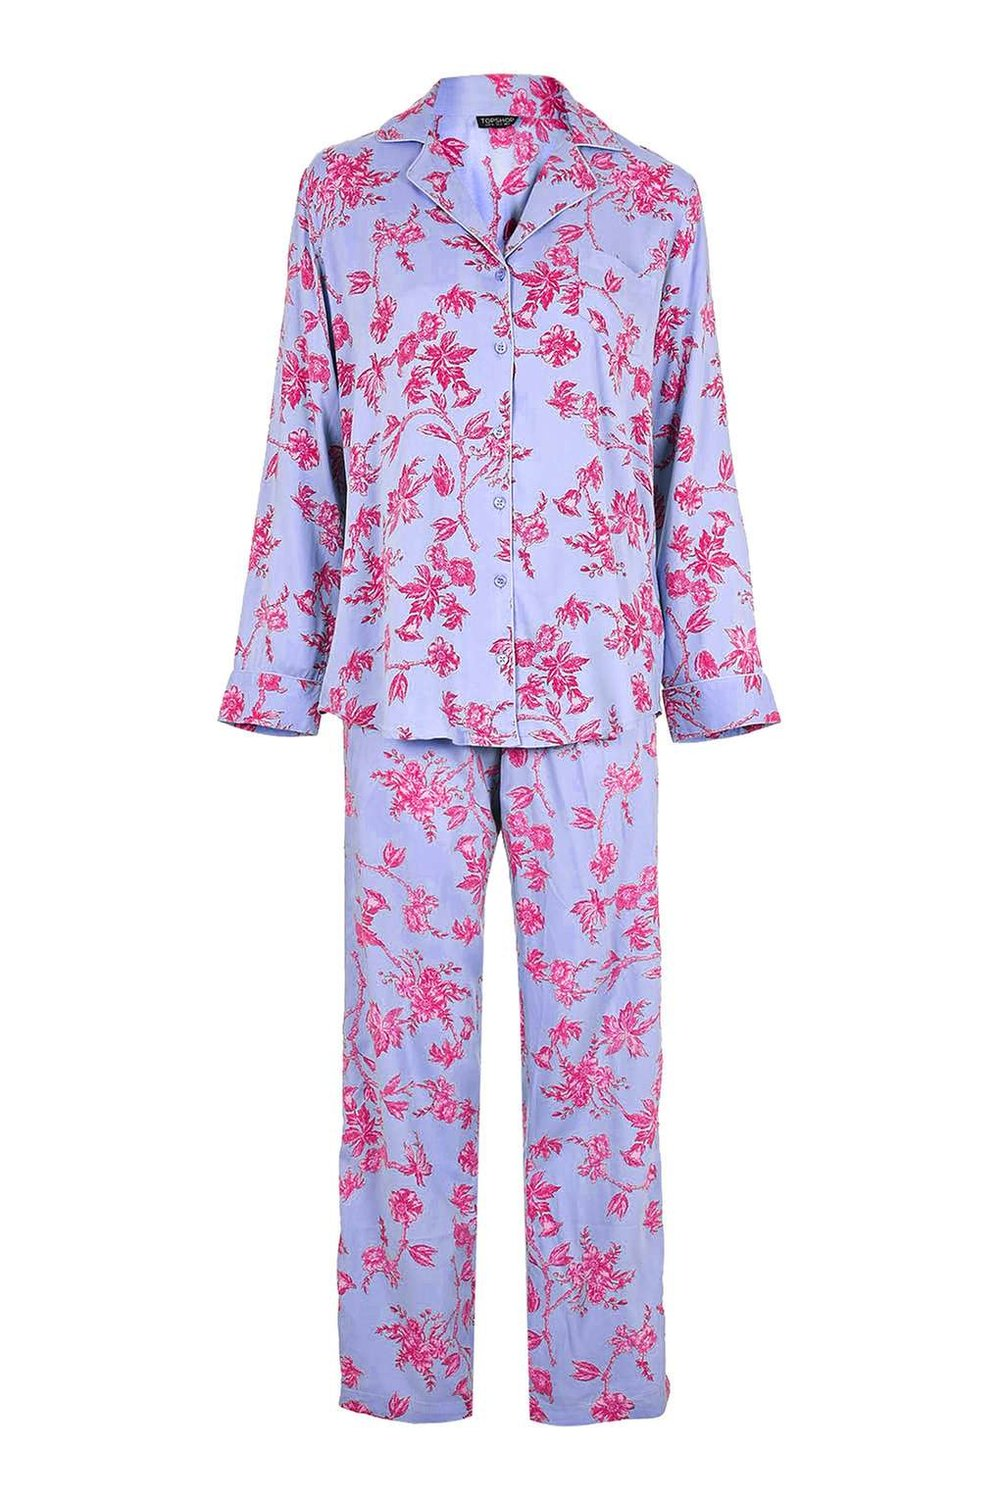 TOPSHOP WALLPAPER PYJAMA SET